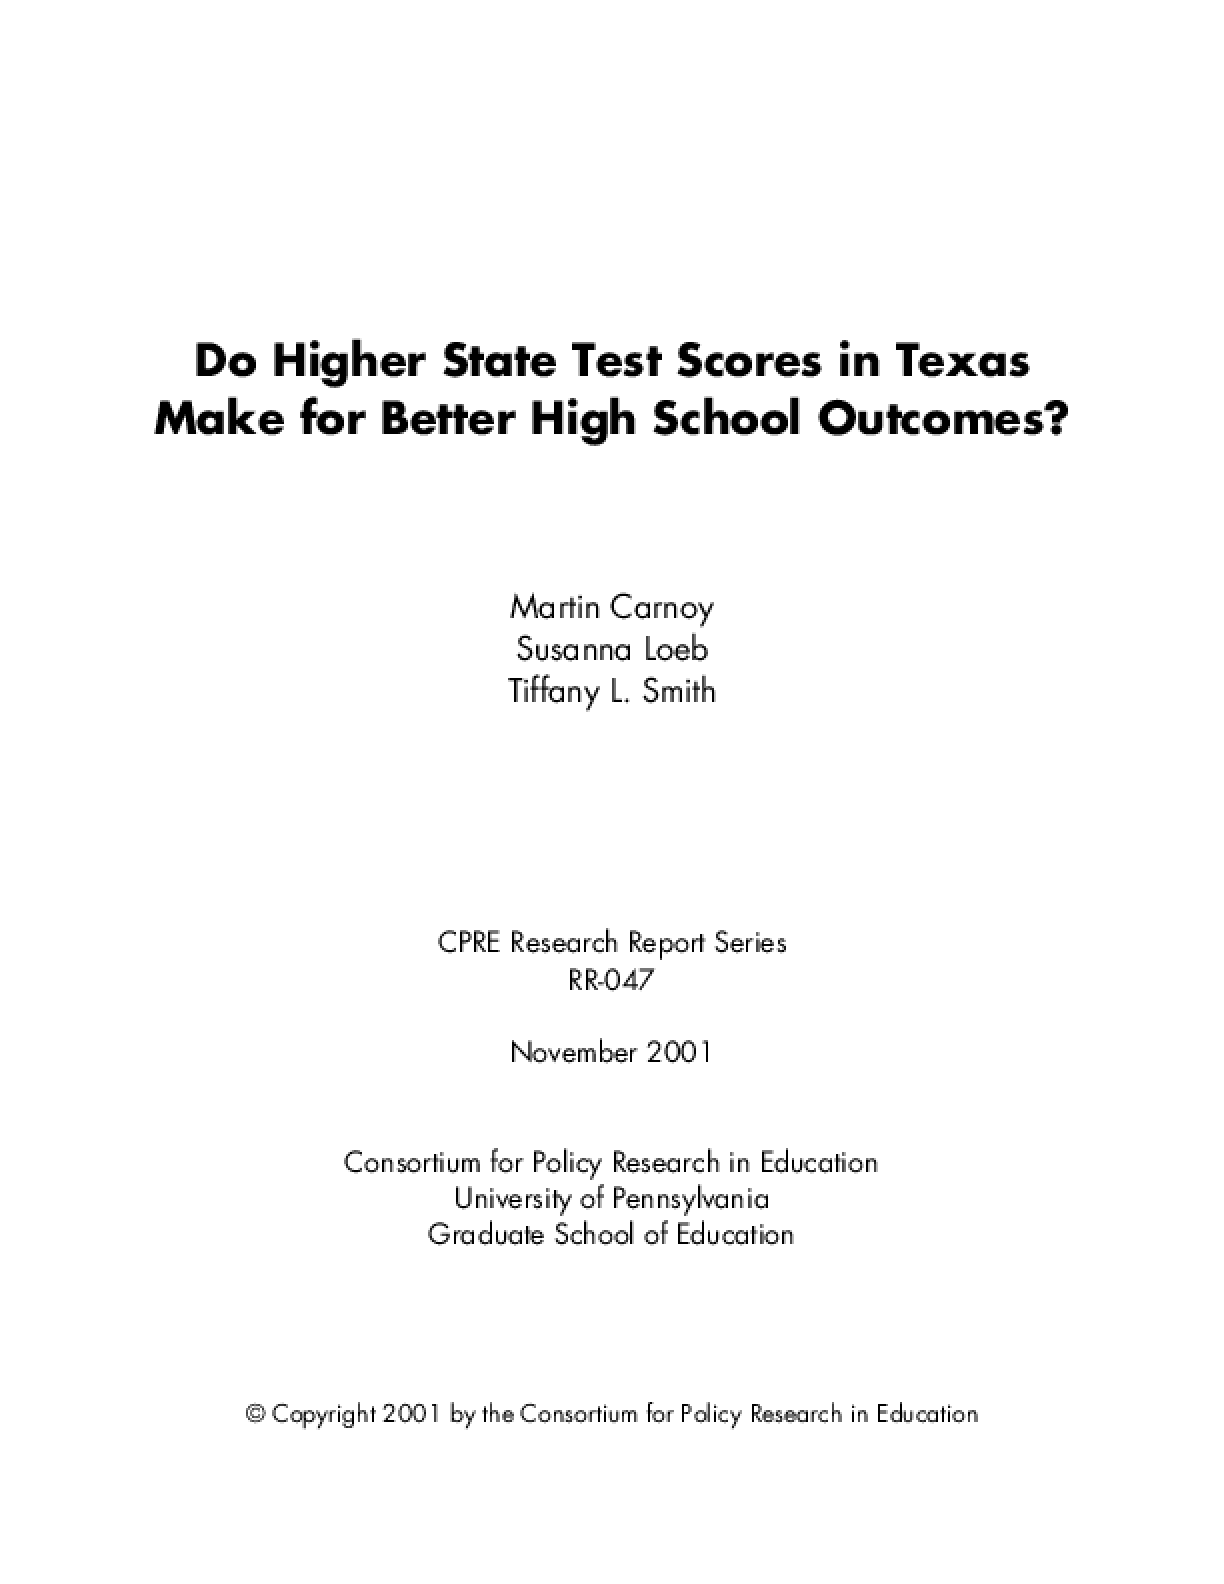 Do Higher State Test Scores in Texas Make for Better High School Outcomes?